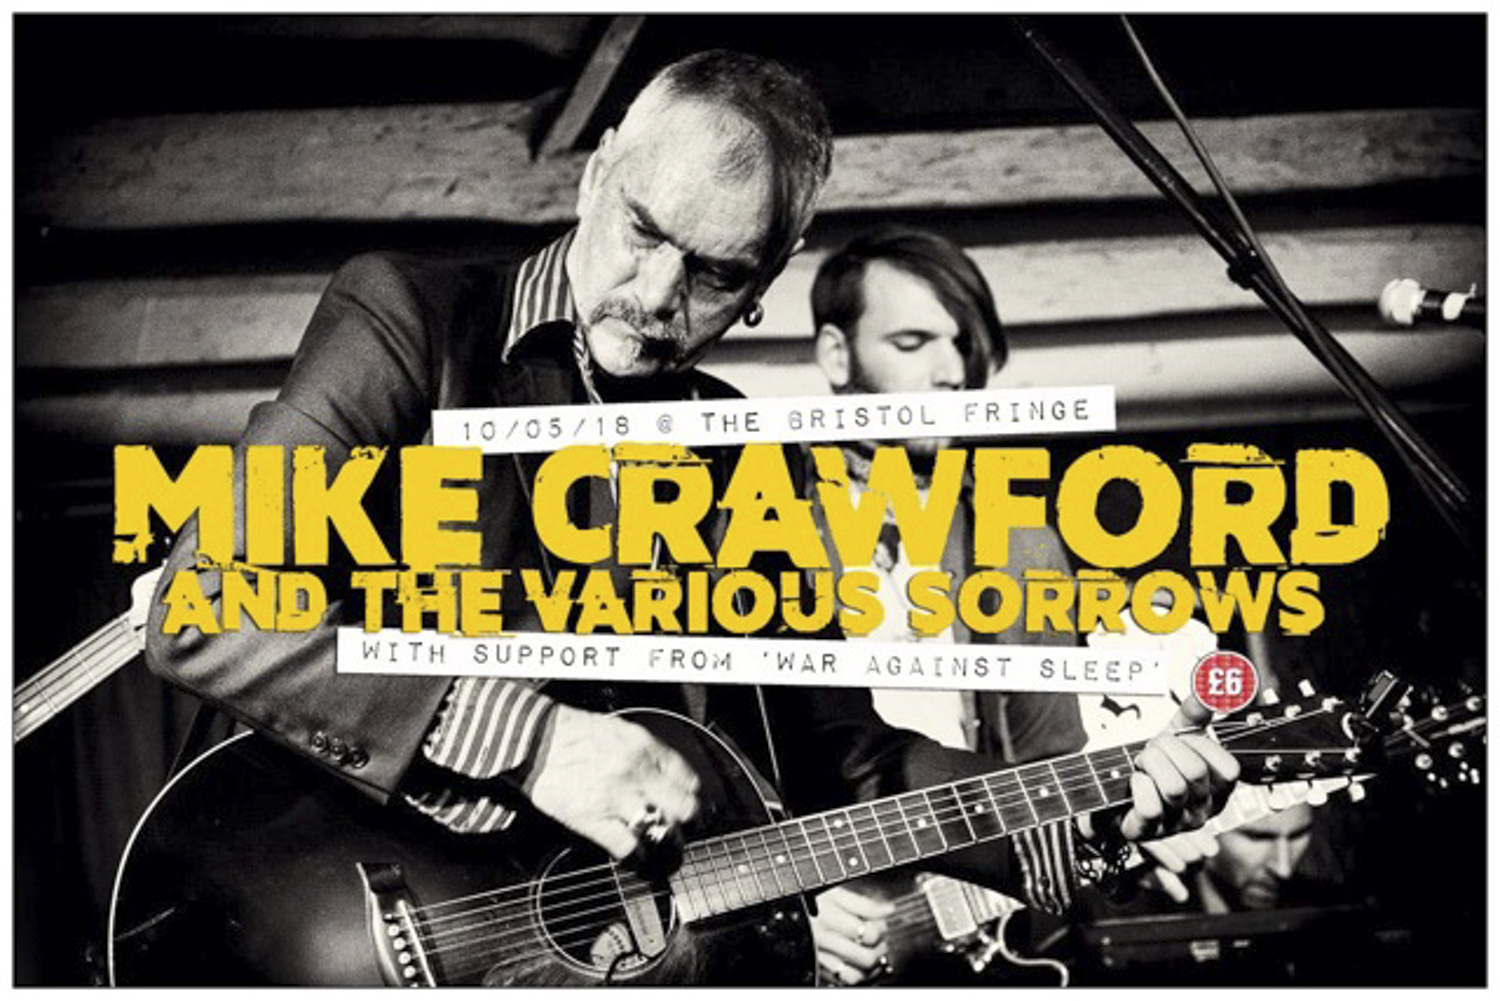 Mike Crawford & the Various Sorrows